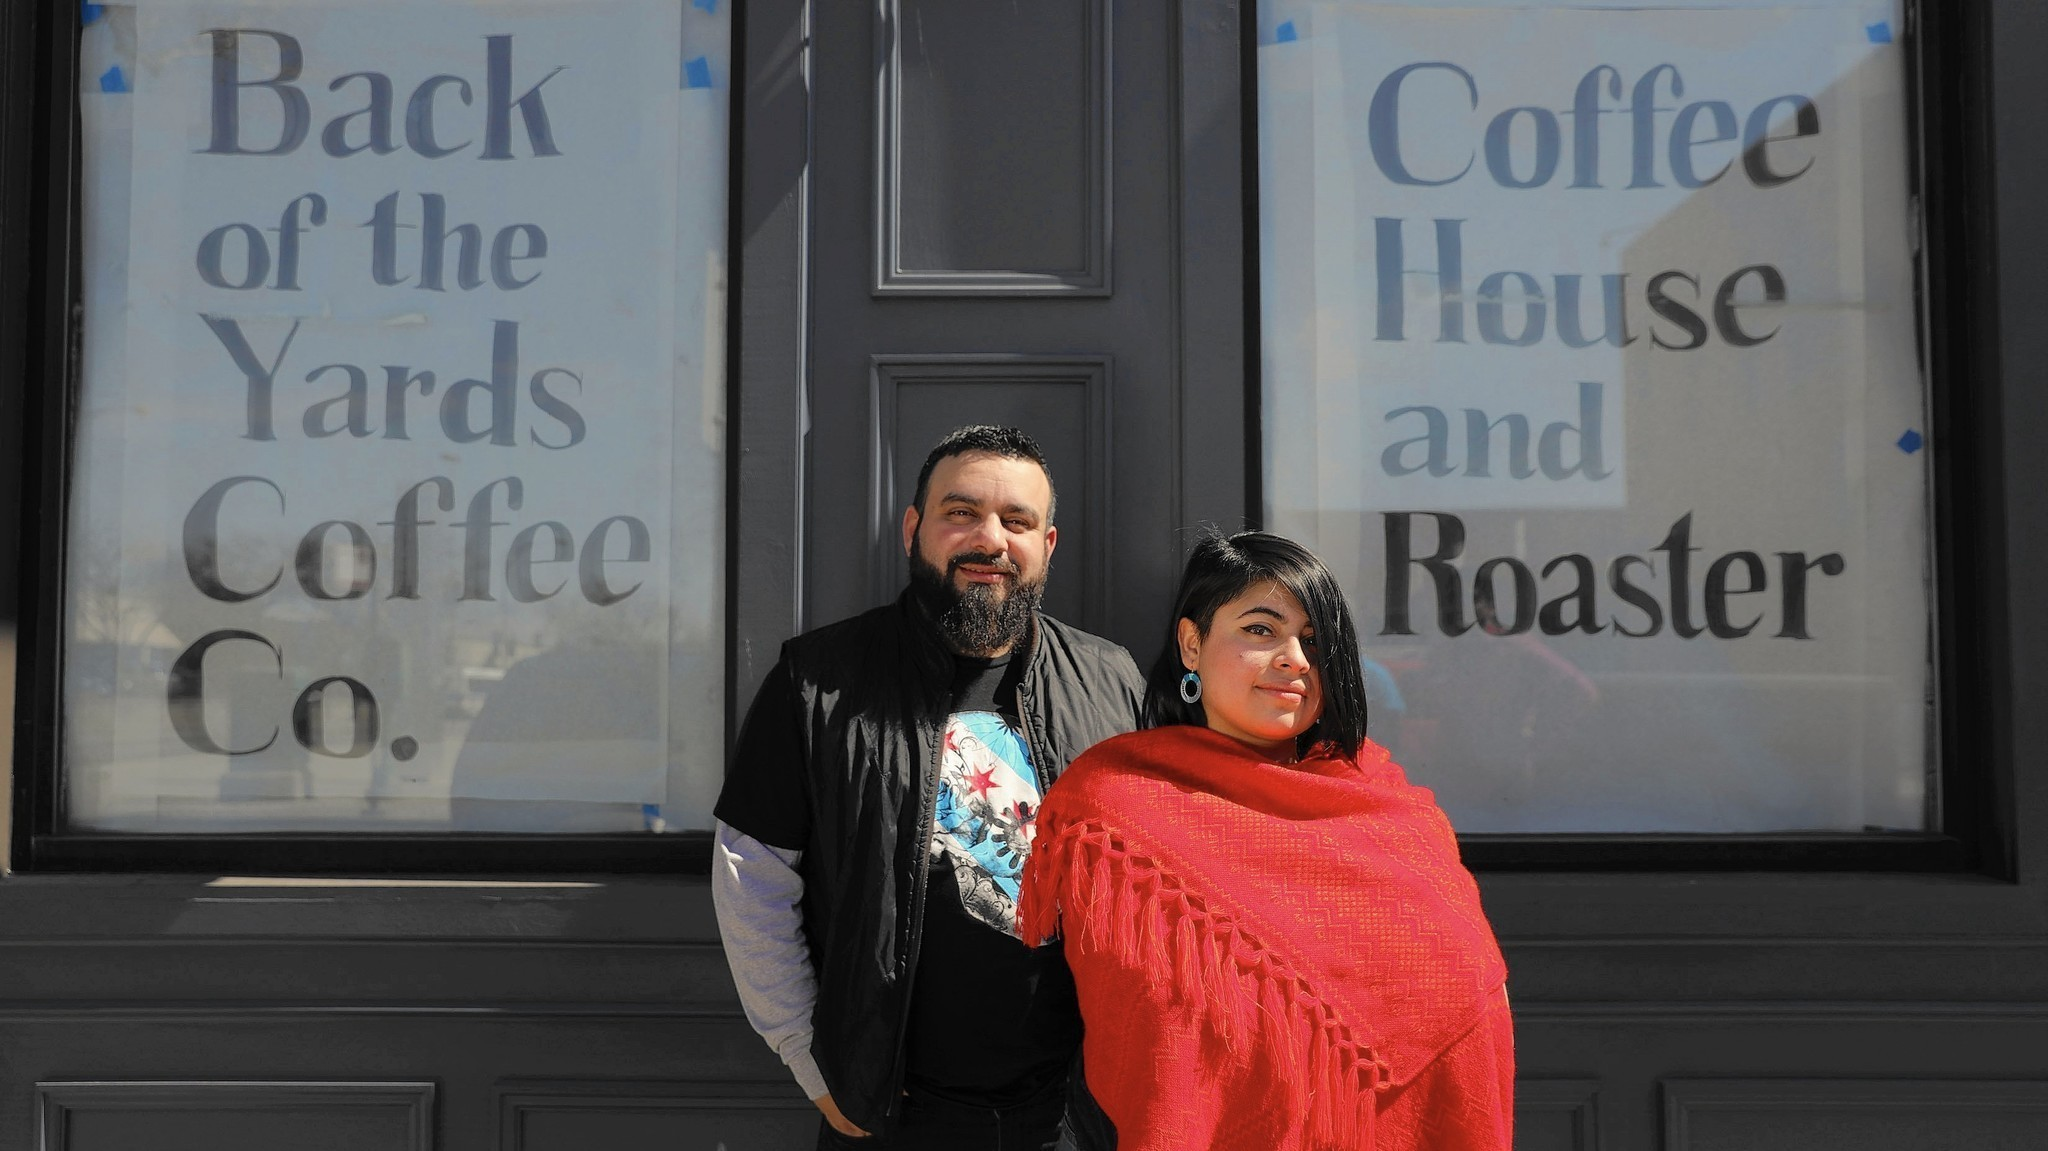 Jesse Iñiguez and Maya Hernandez. Image from:  https://www.chicagotribune.com/columns/mary-schmich/ct-back-of-the-yards-coffee-shop-mary-schmich-0326-20170324-column.html